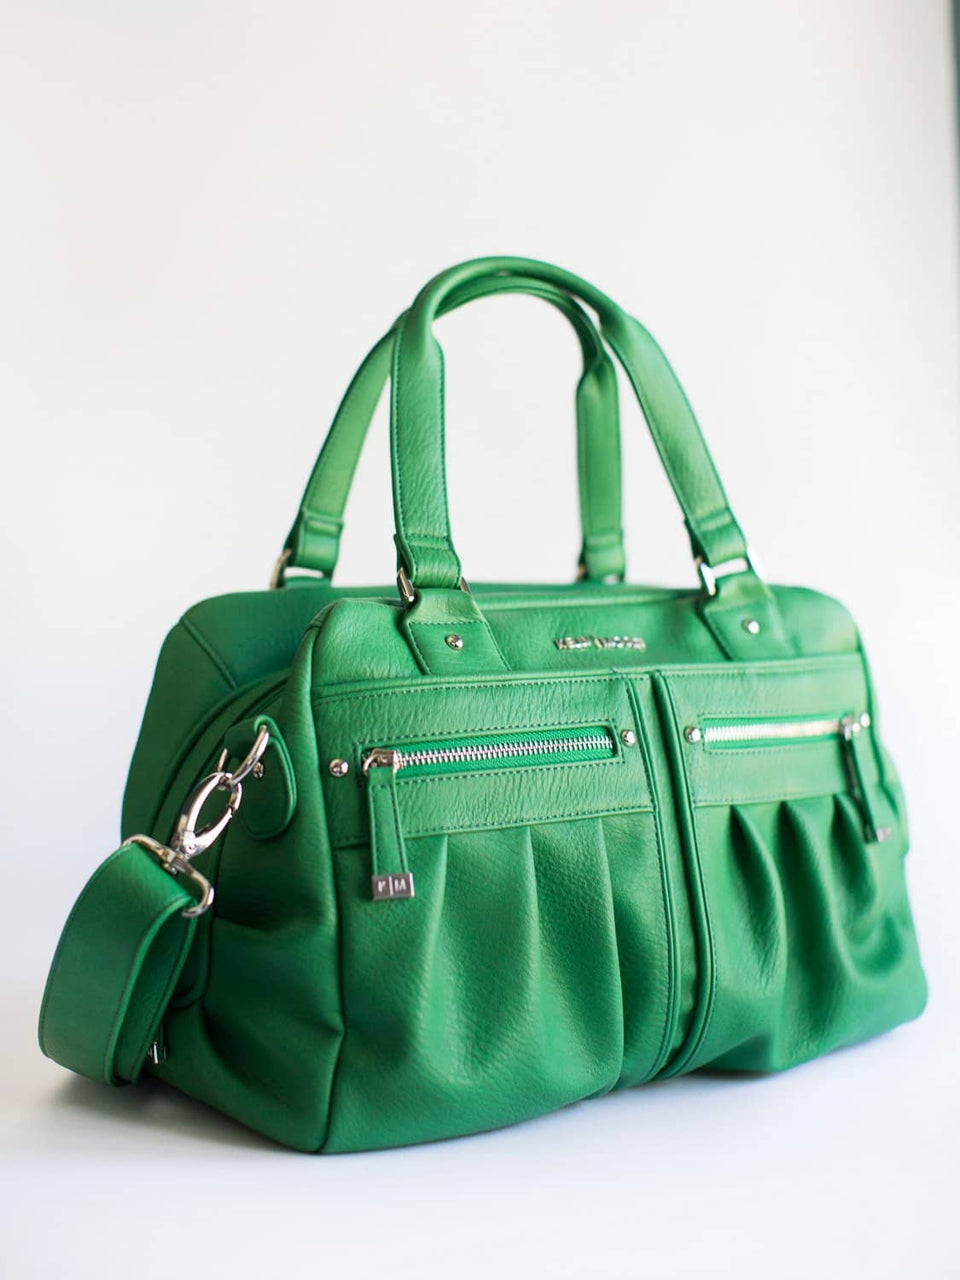 Mimi 2.0 - Kelly Moore Bag